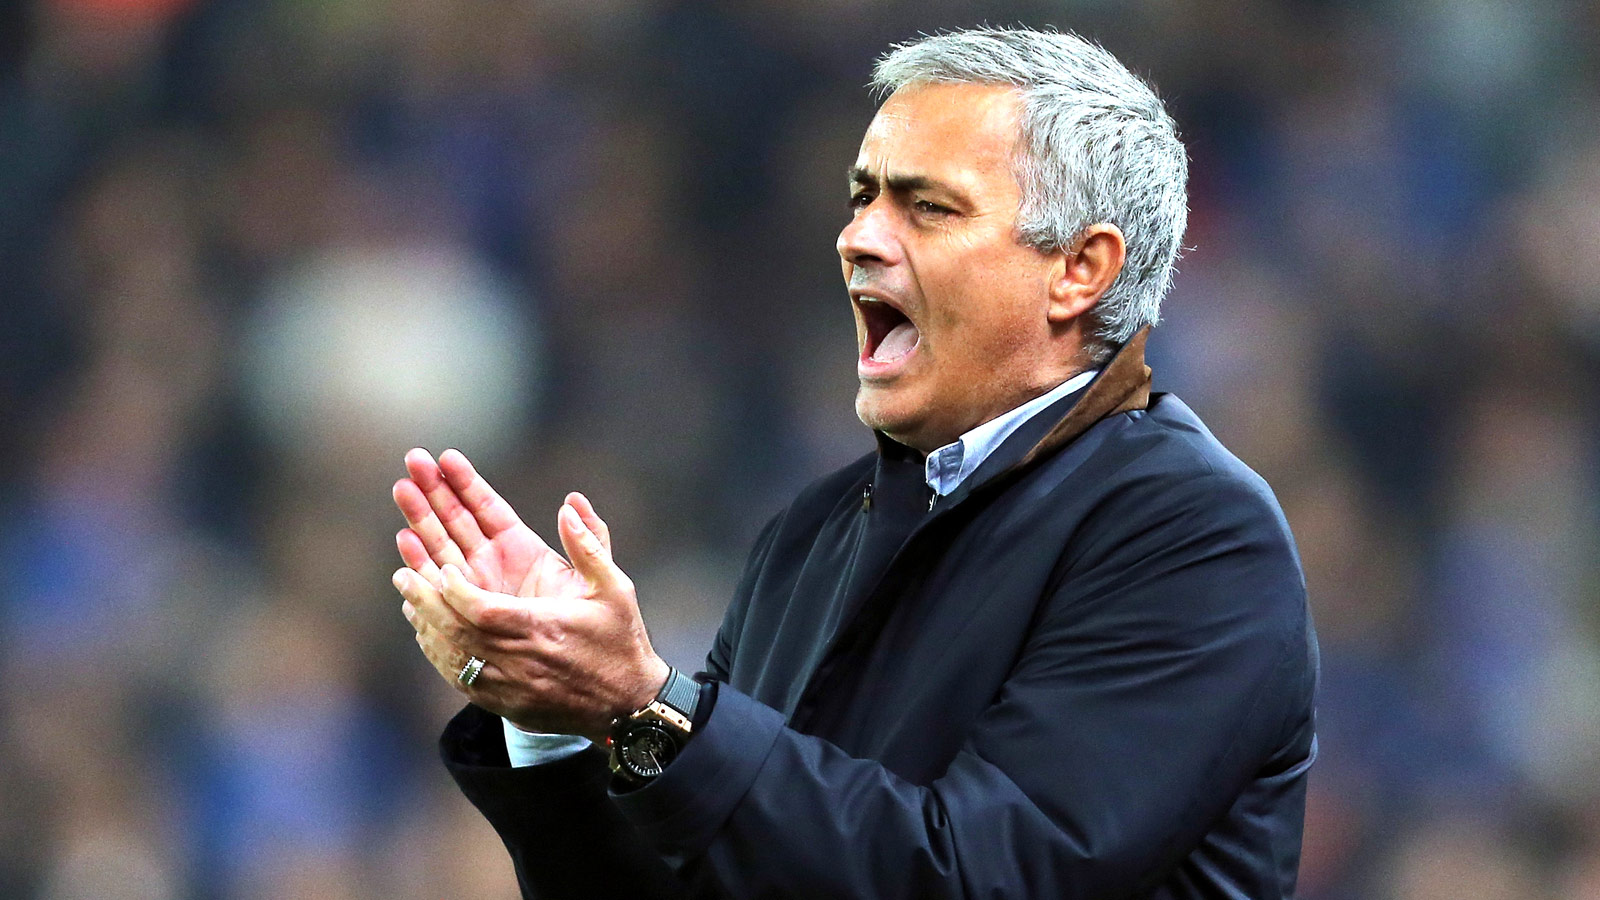 Jose Mourinho: Chelsea players are behind me